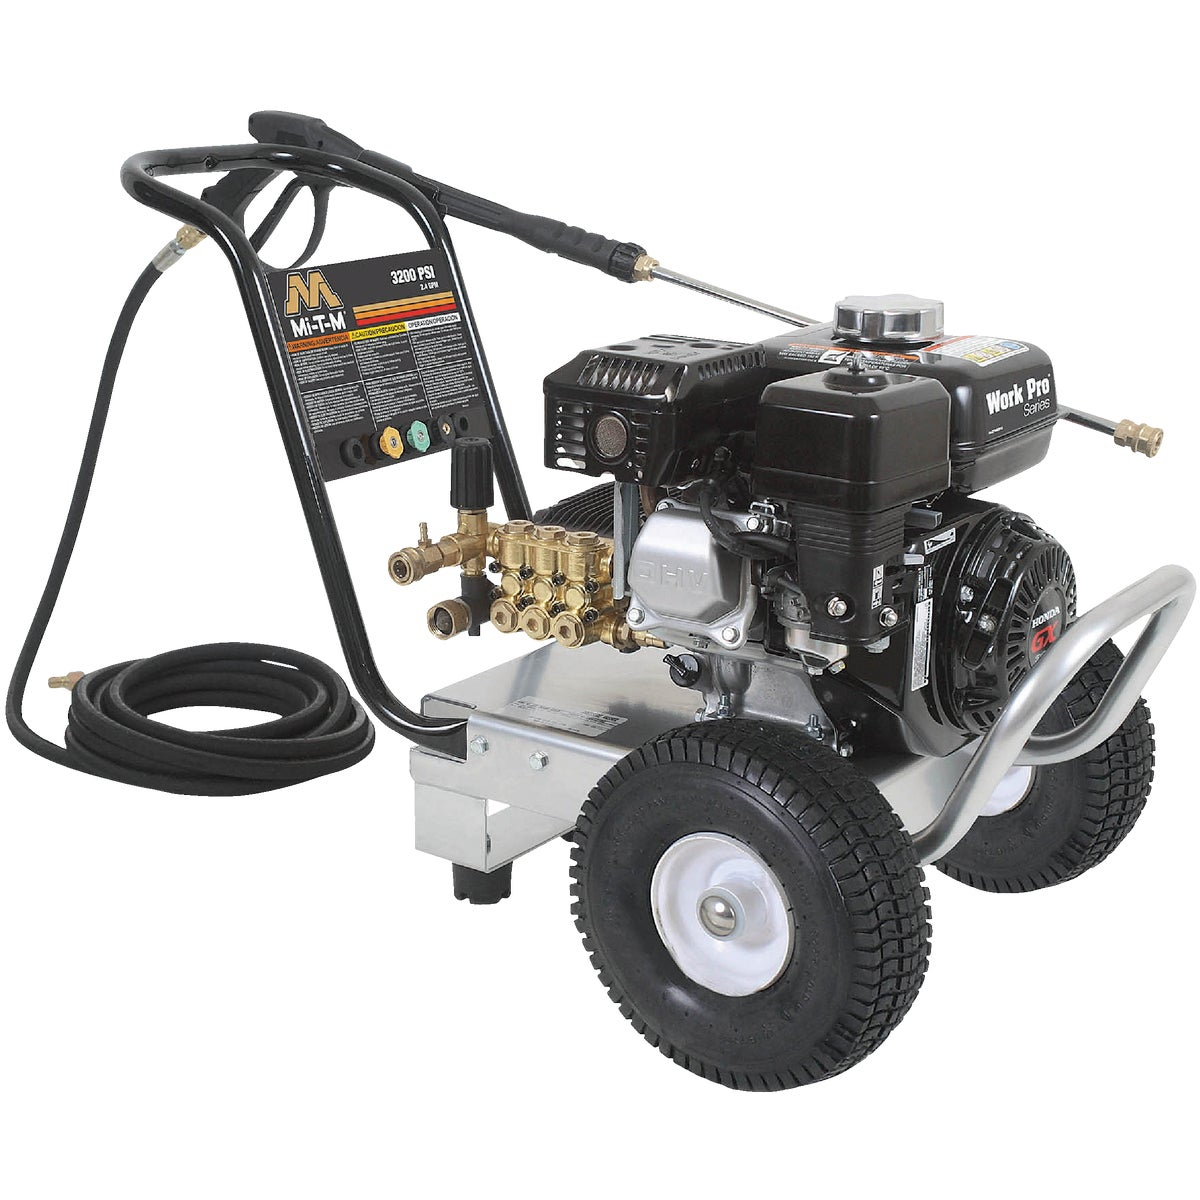 3000PSI PRESSURE WASHER - WP-3000-4MHB by Mi T M Corp